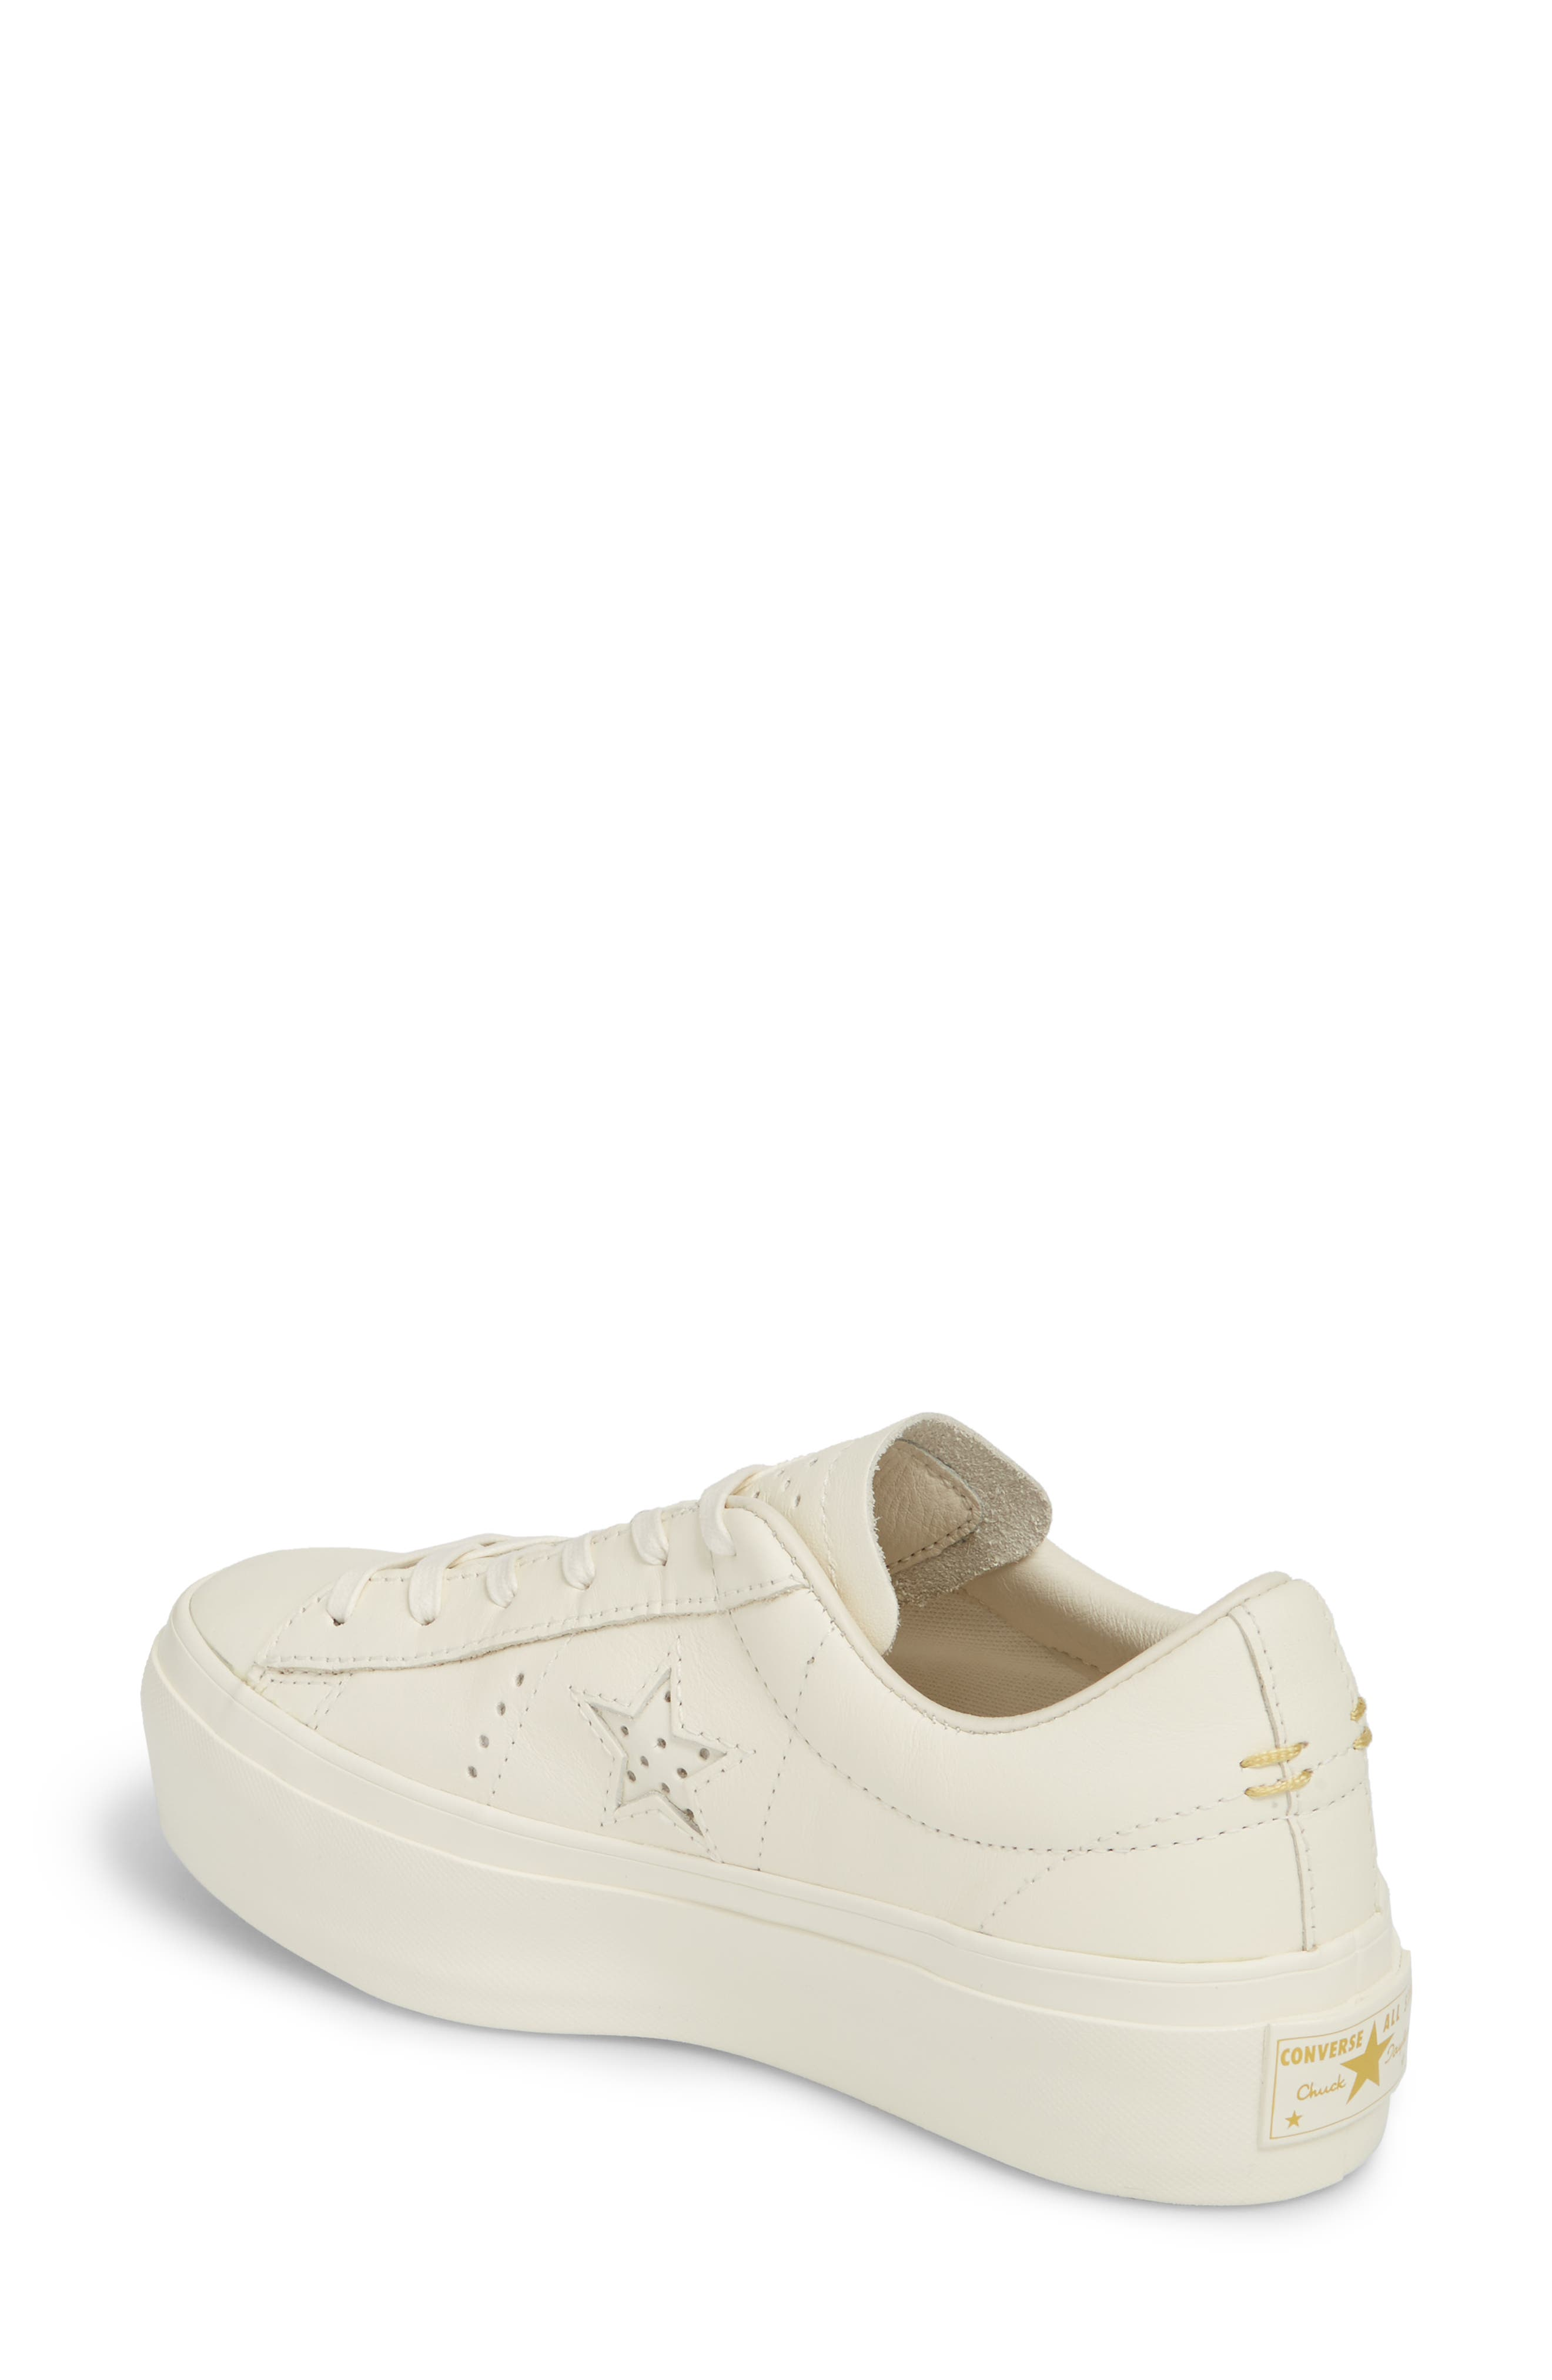 Chuck Taylor<sup>®</sup> All Star<sup>®</sup> One Star Platform Sneaker,                             Alternate thumbnail 2, color,                             101